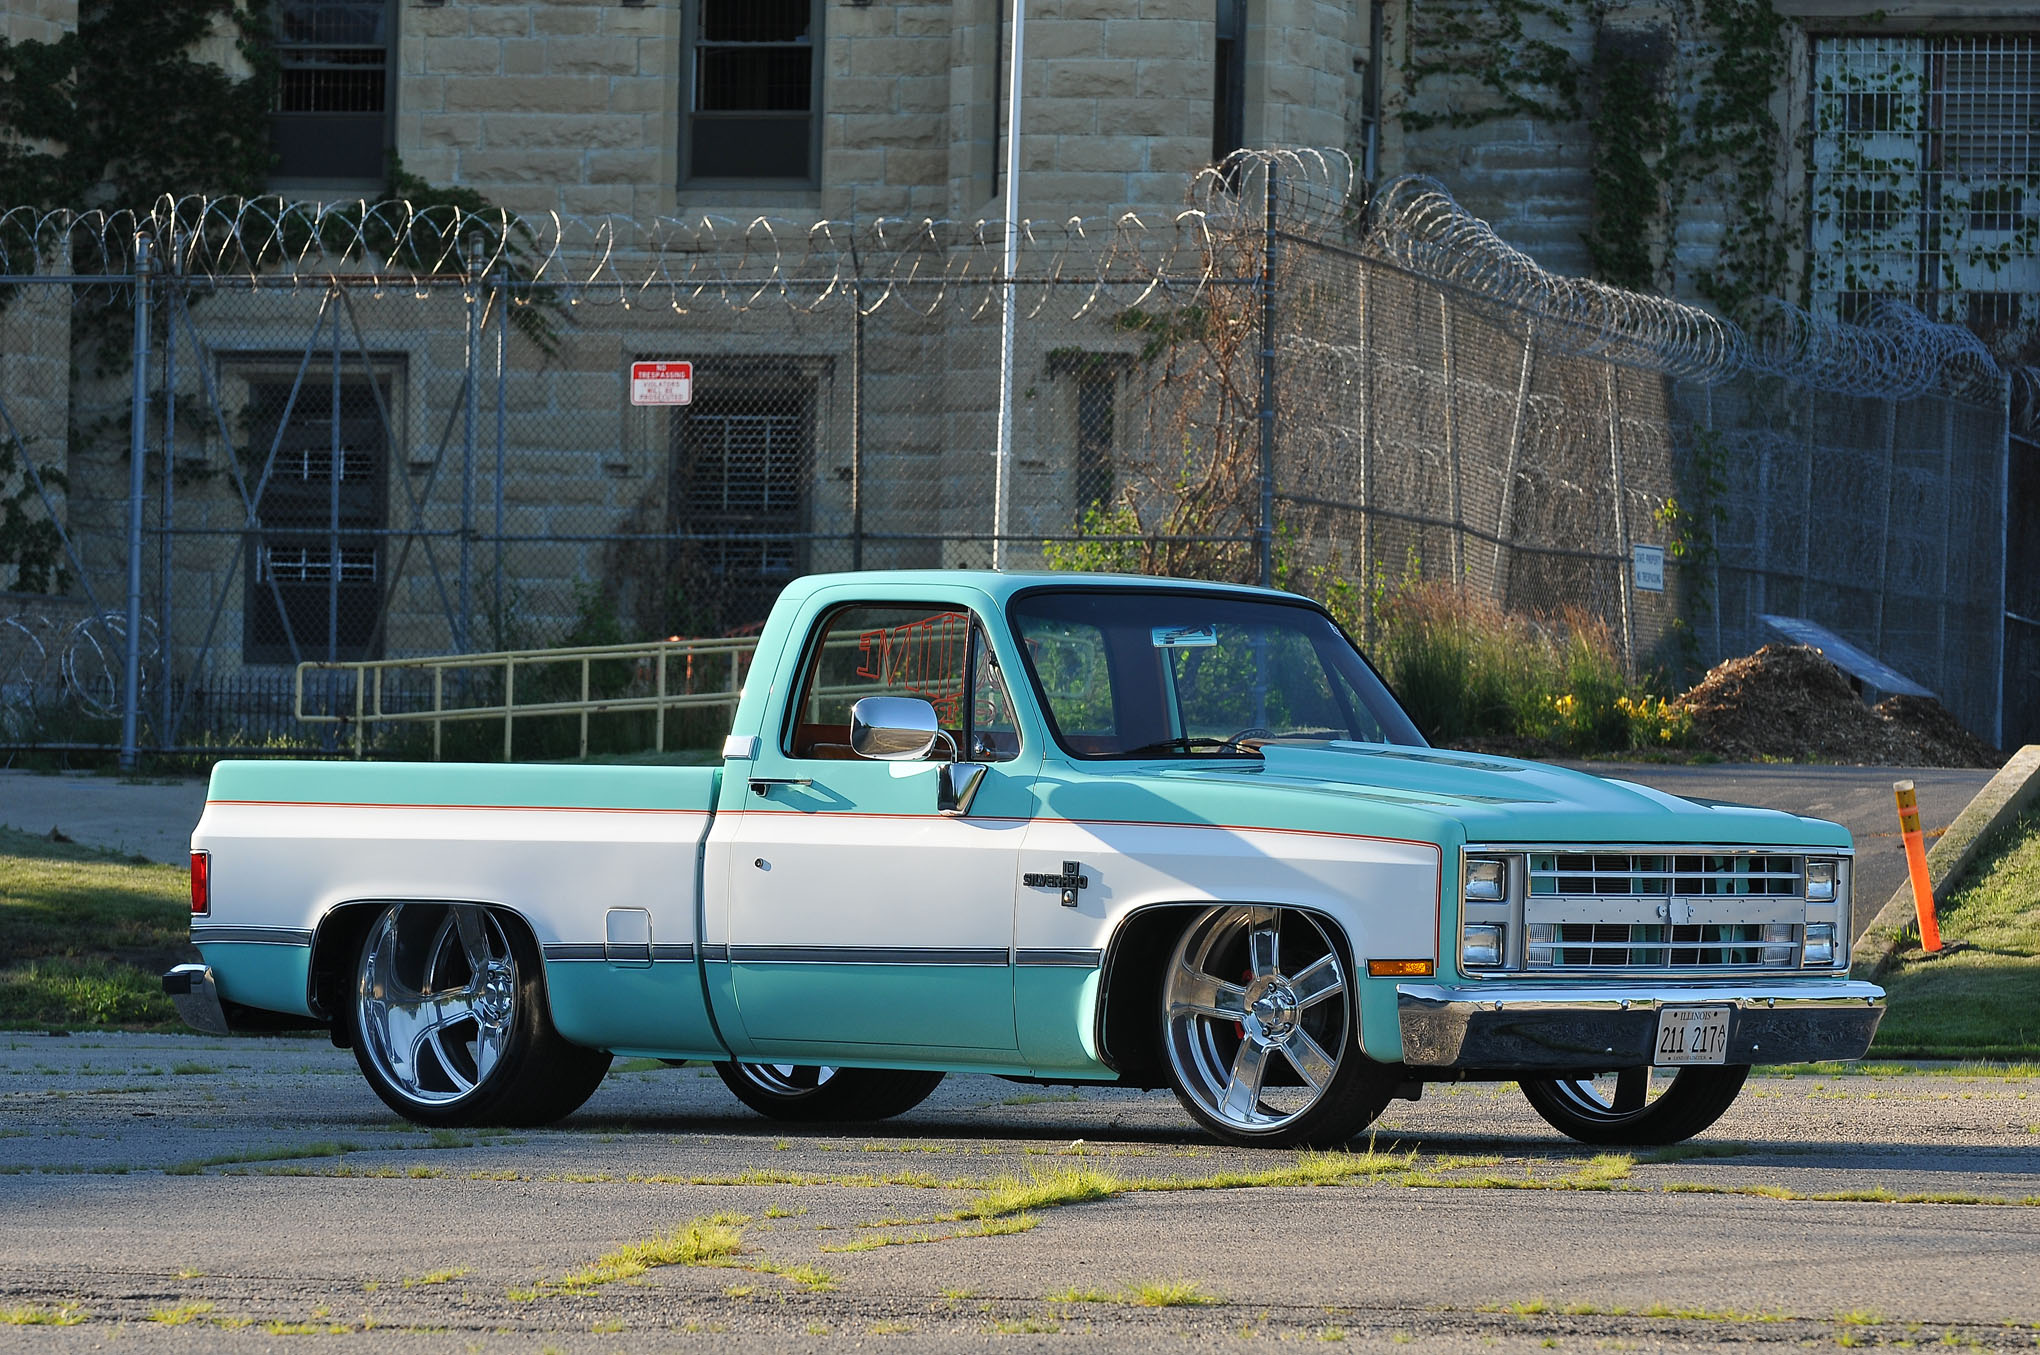 525hp Ls3 Powered 1985 Chevy C10 Pickup Truck Bought Not Built